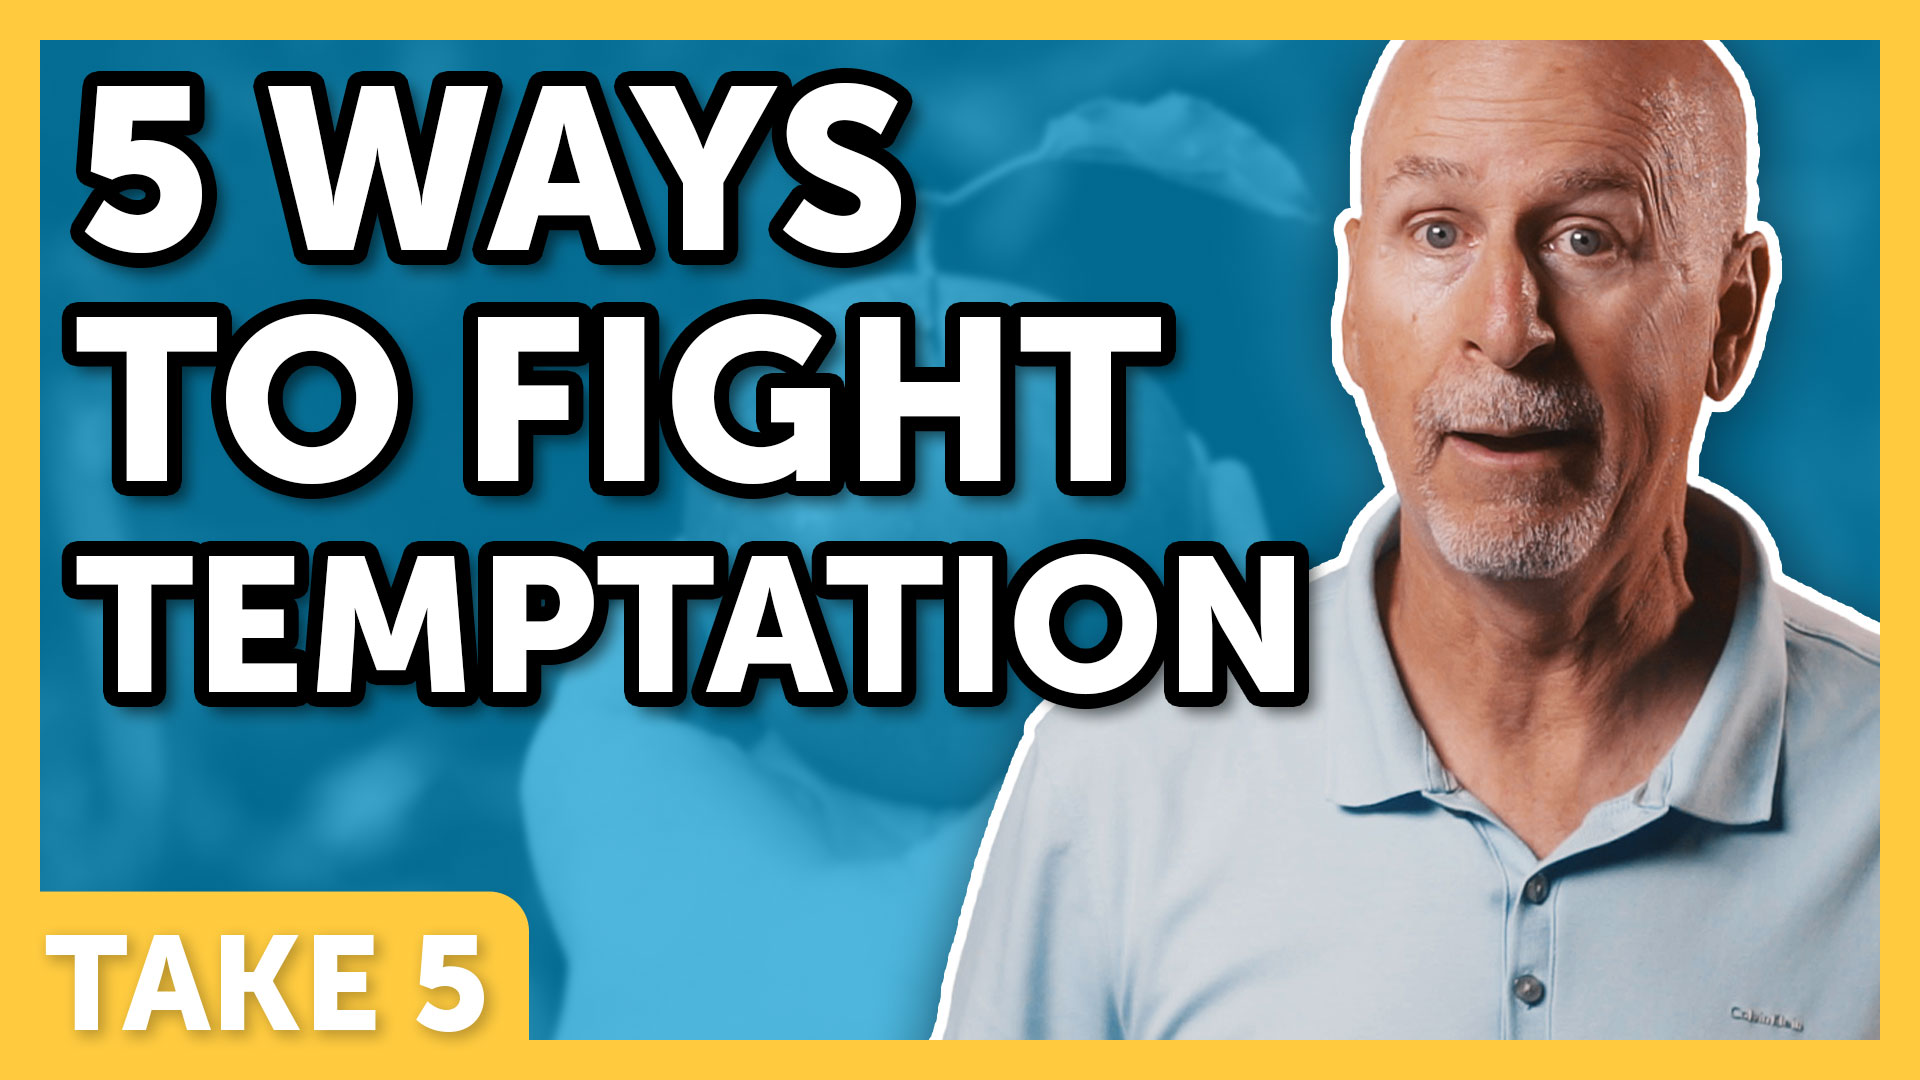 5 Ways to Fight Temptation